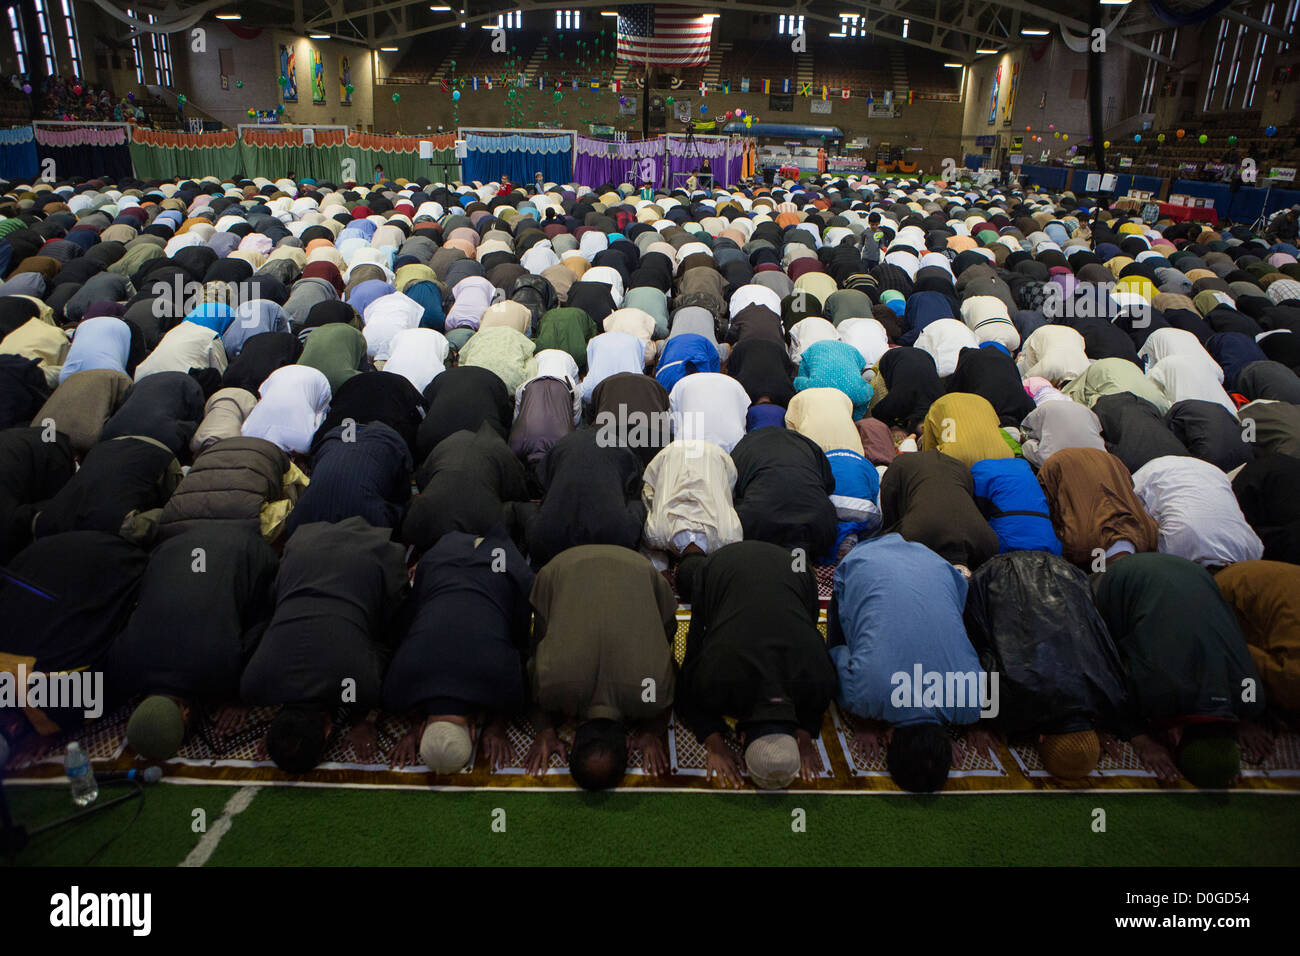 Muslim-American men pray at the annual Eid al-Adha prayer at the Teaneck Armory in Teaneck, New Jersey. - Stock Image